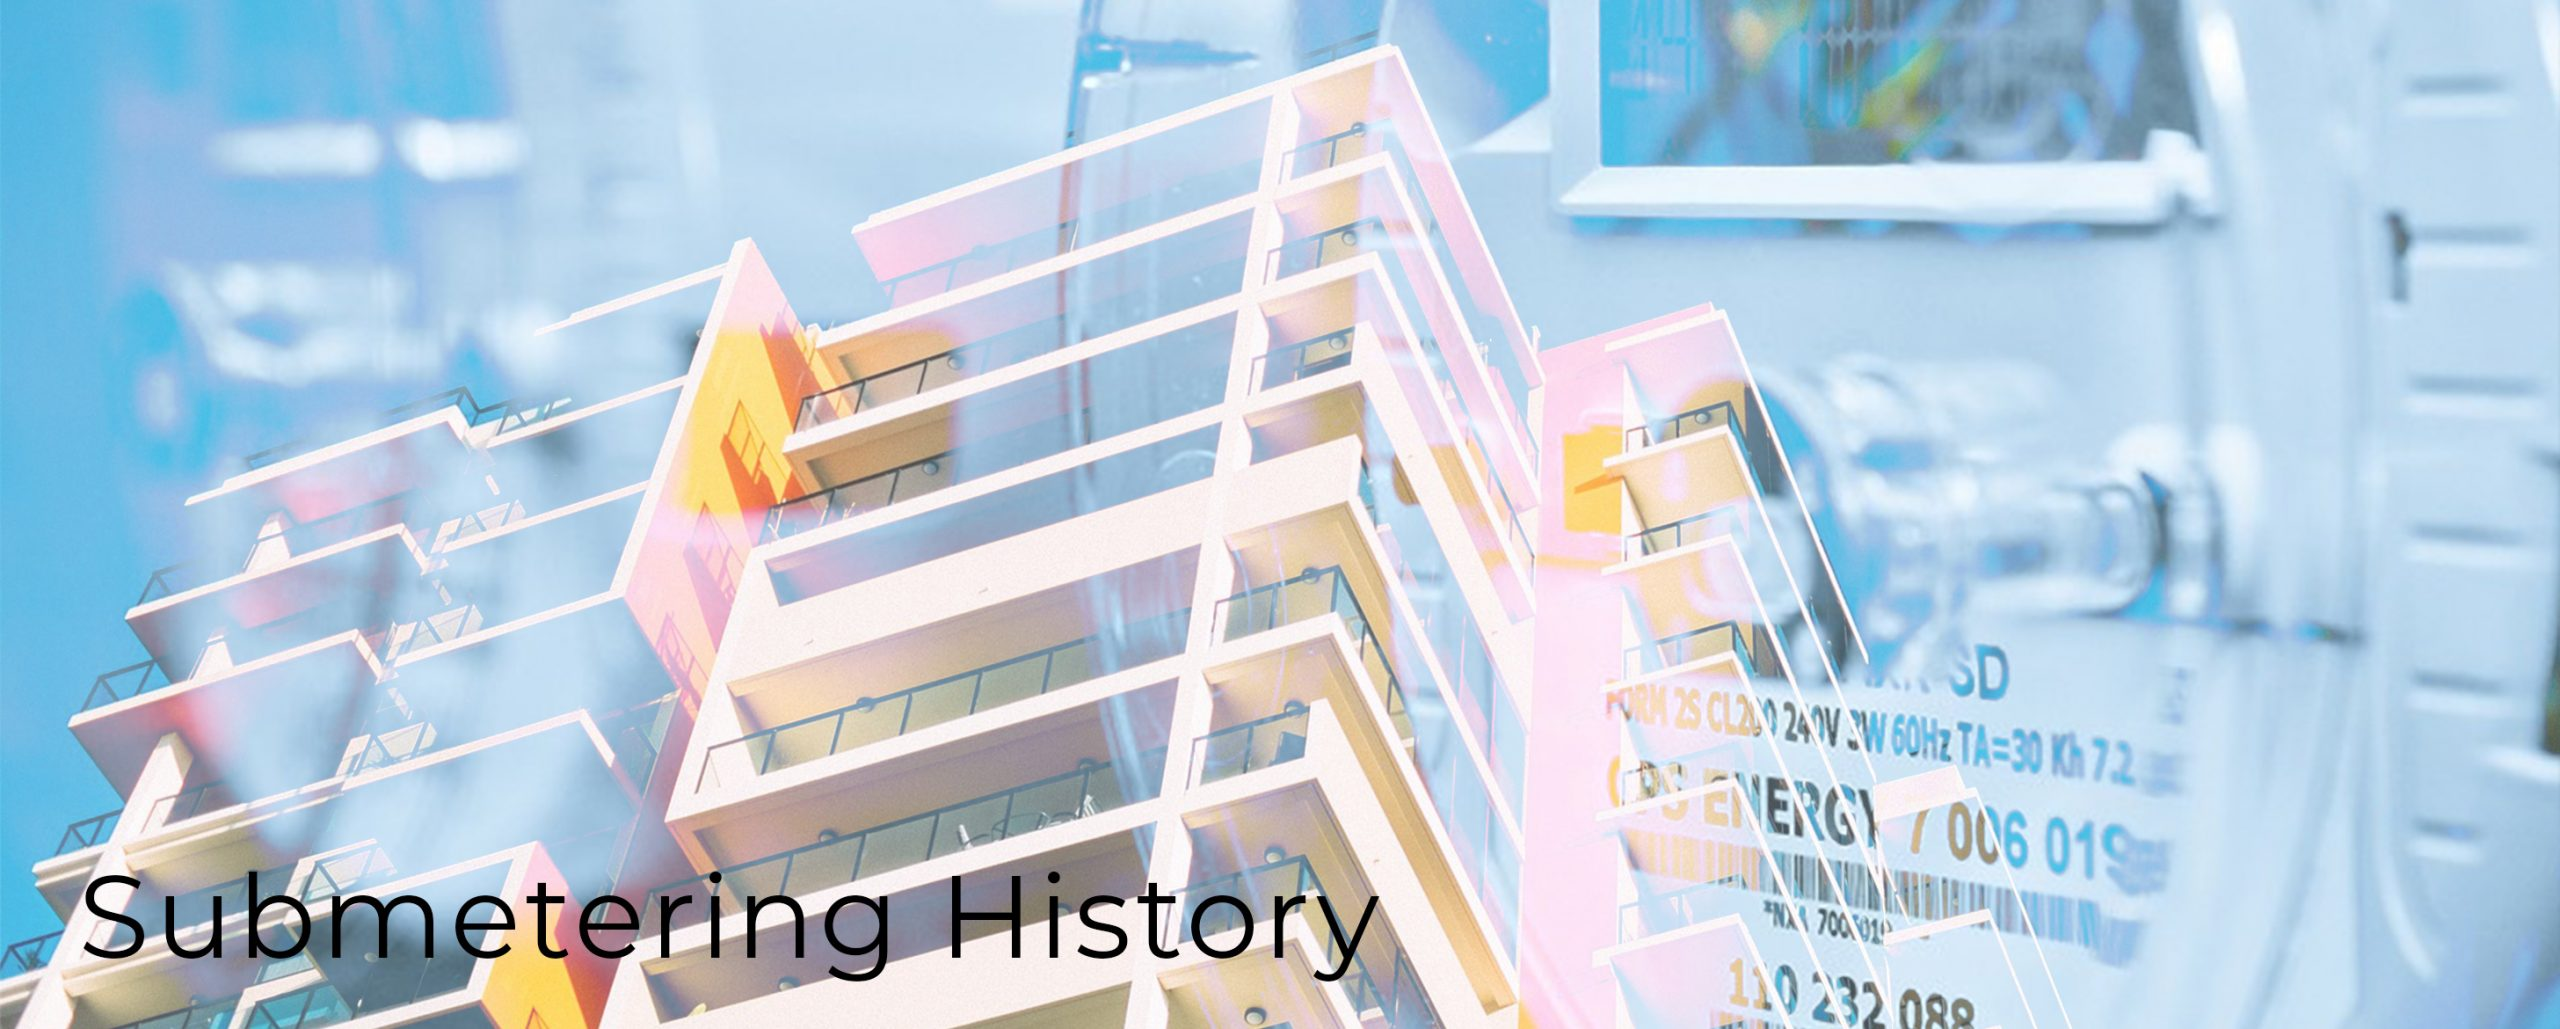 History of submetering and smart meters.